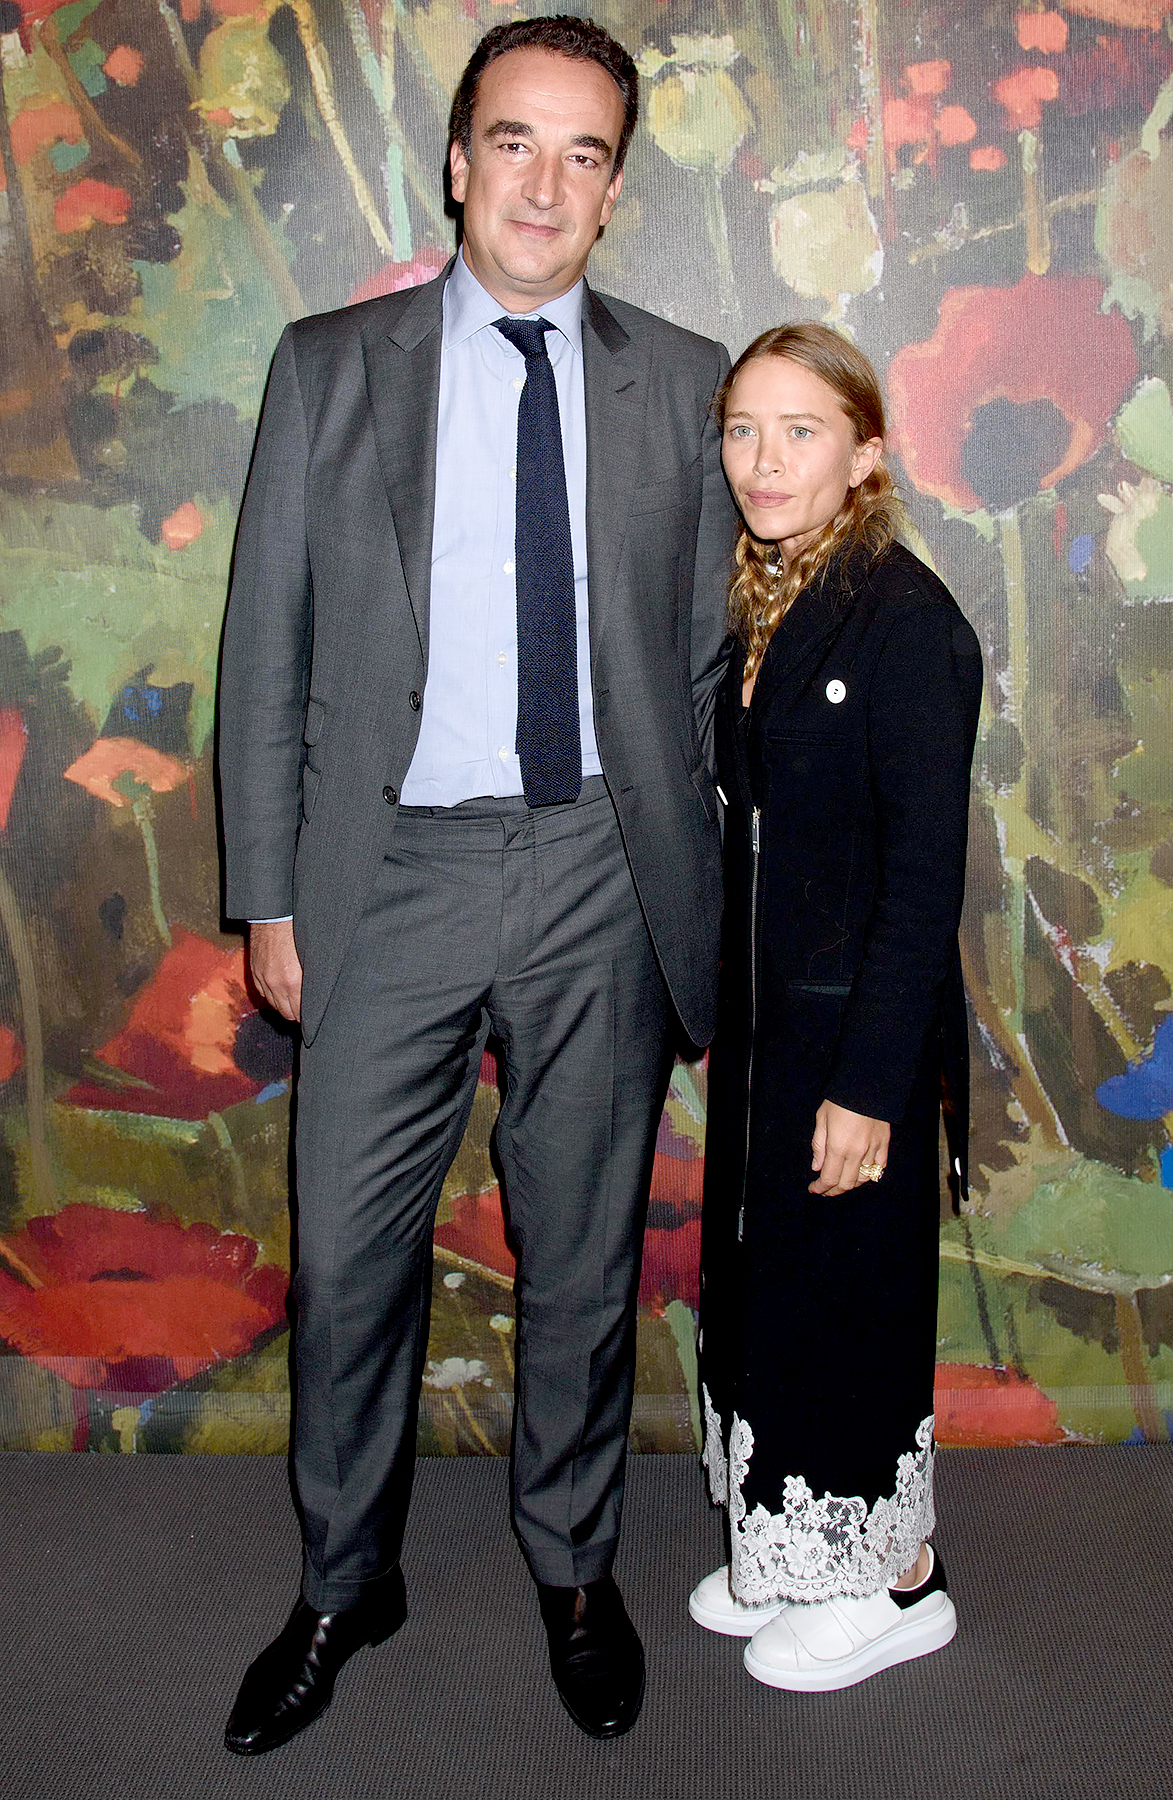 Mary Kate Olsen dating Sarkozy